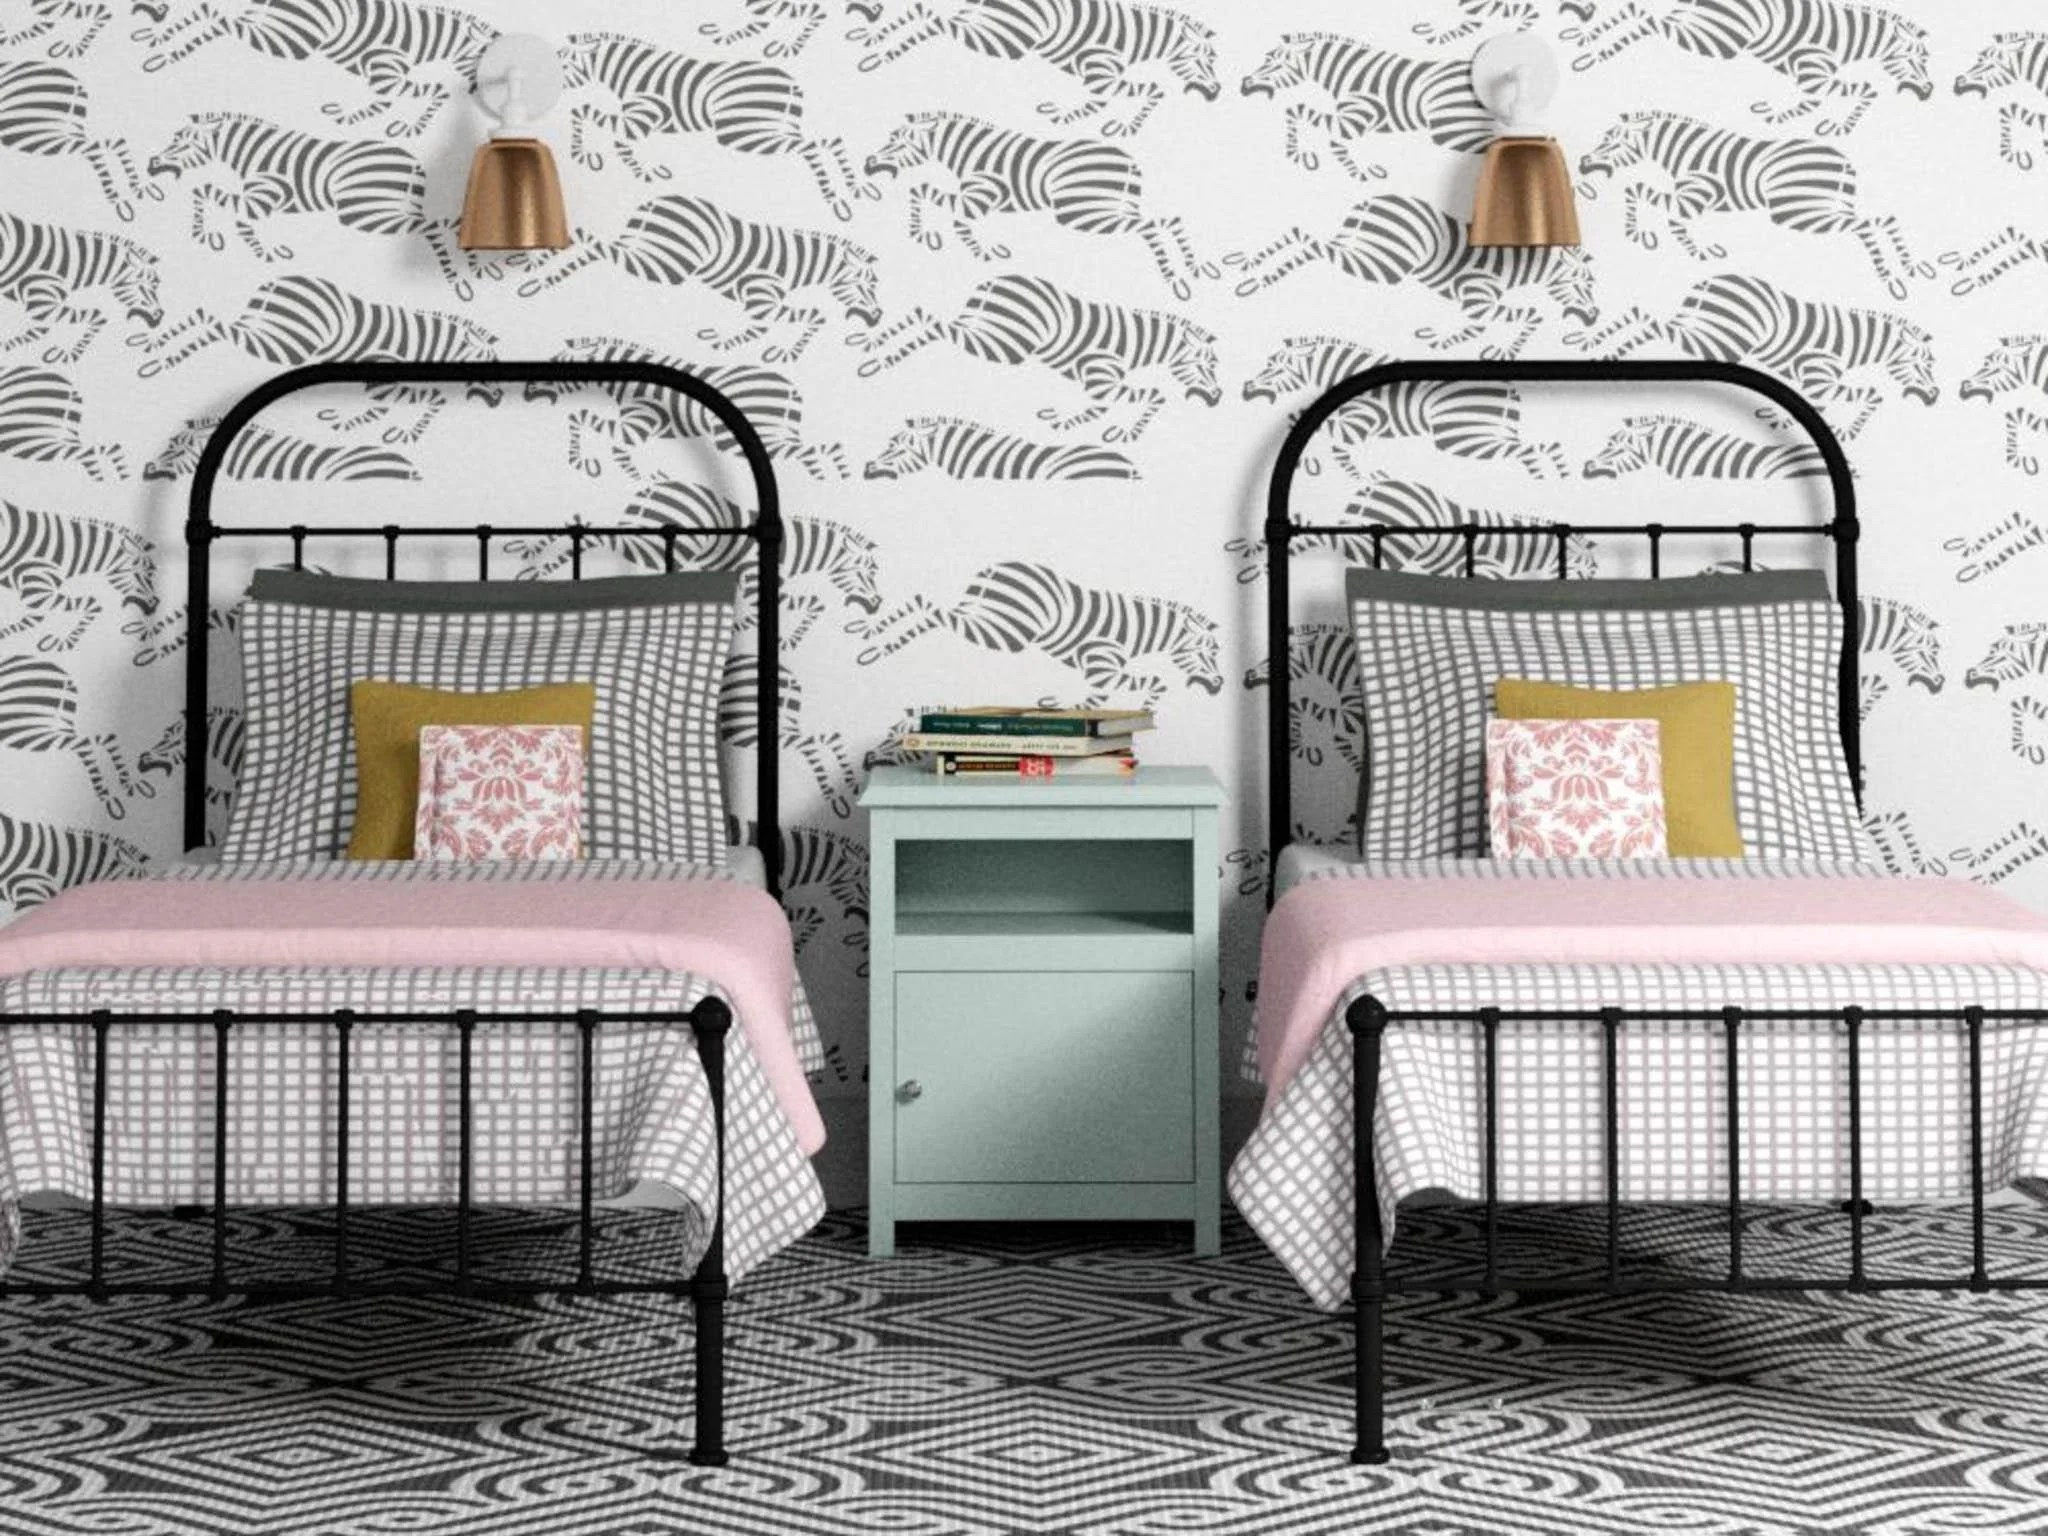 10 Best Kids Beds Choose From Single Bunk Or Cabin The Independent